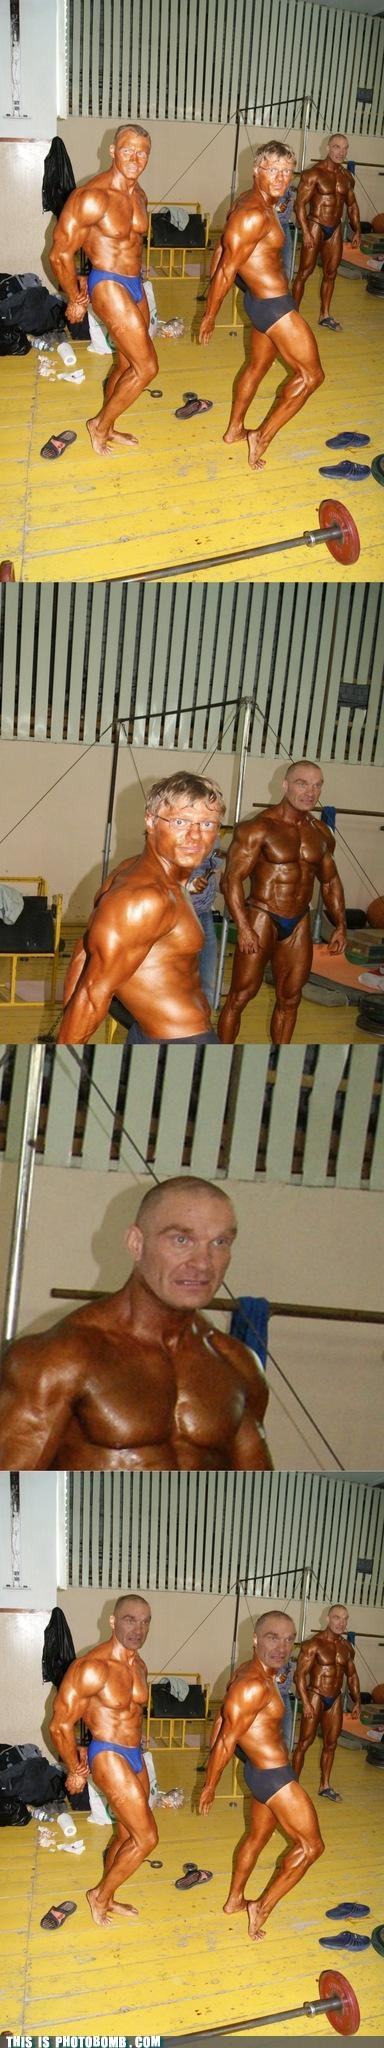 body builders,Reframe,scariest thing,scary,tan,working out